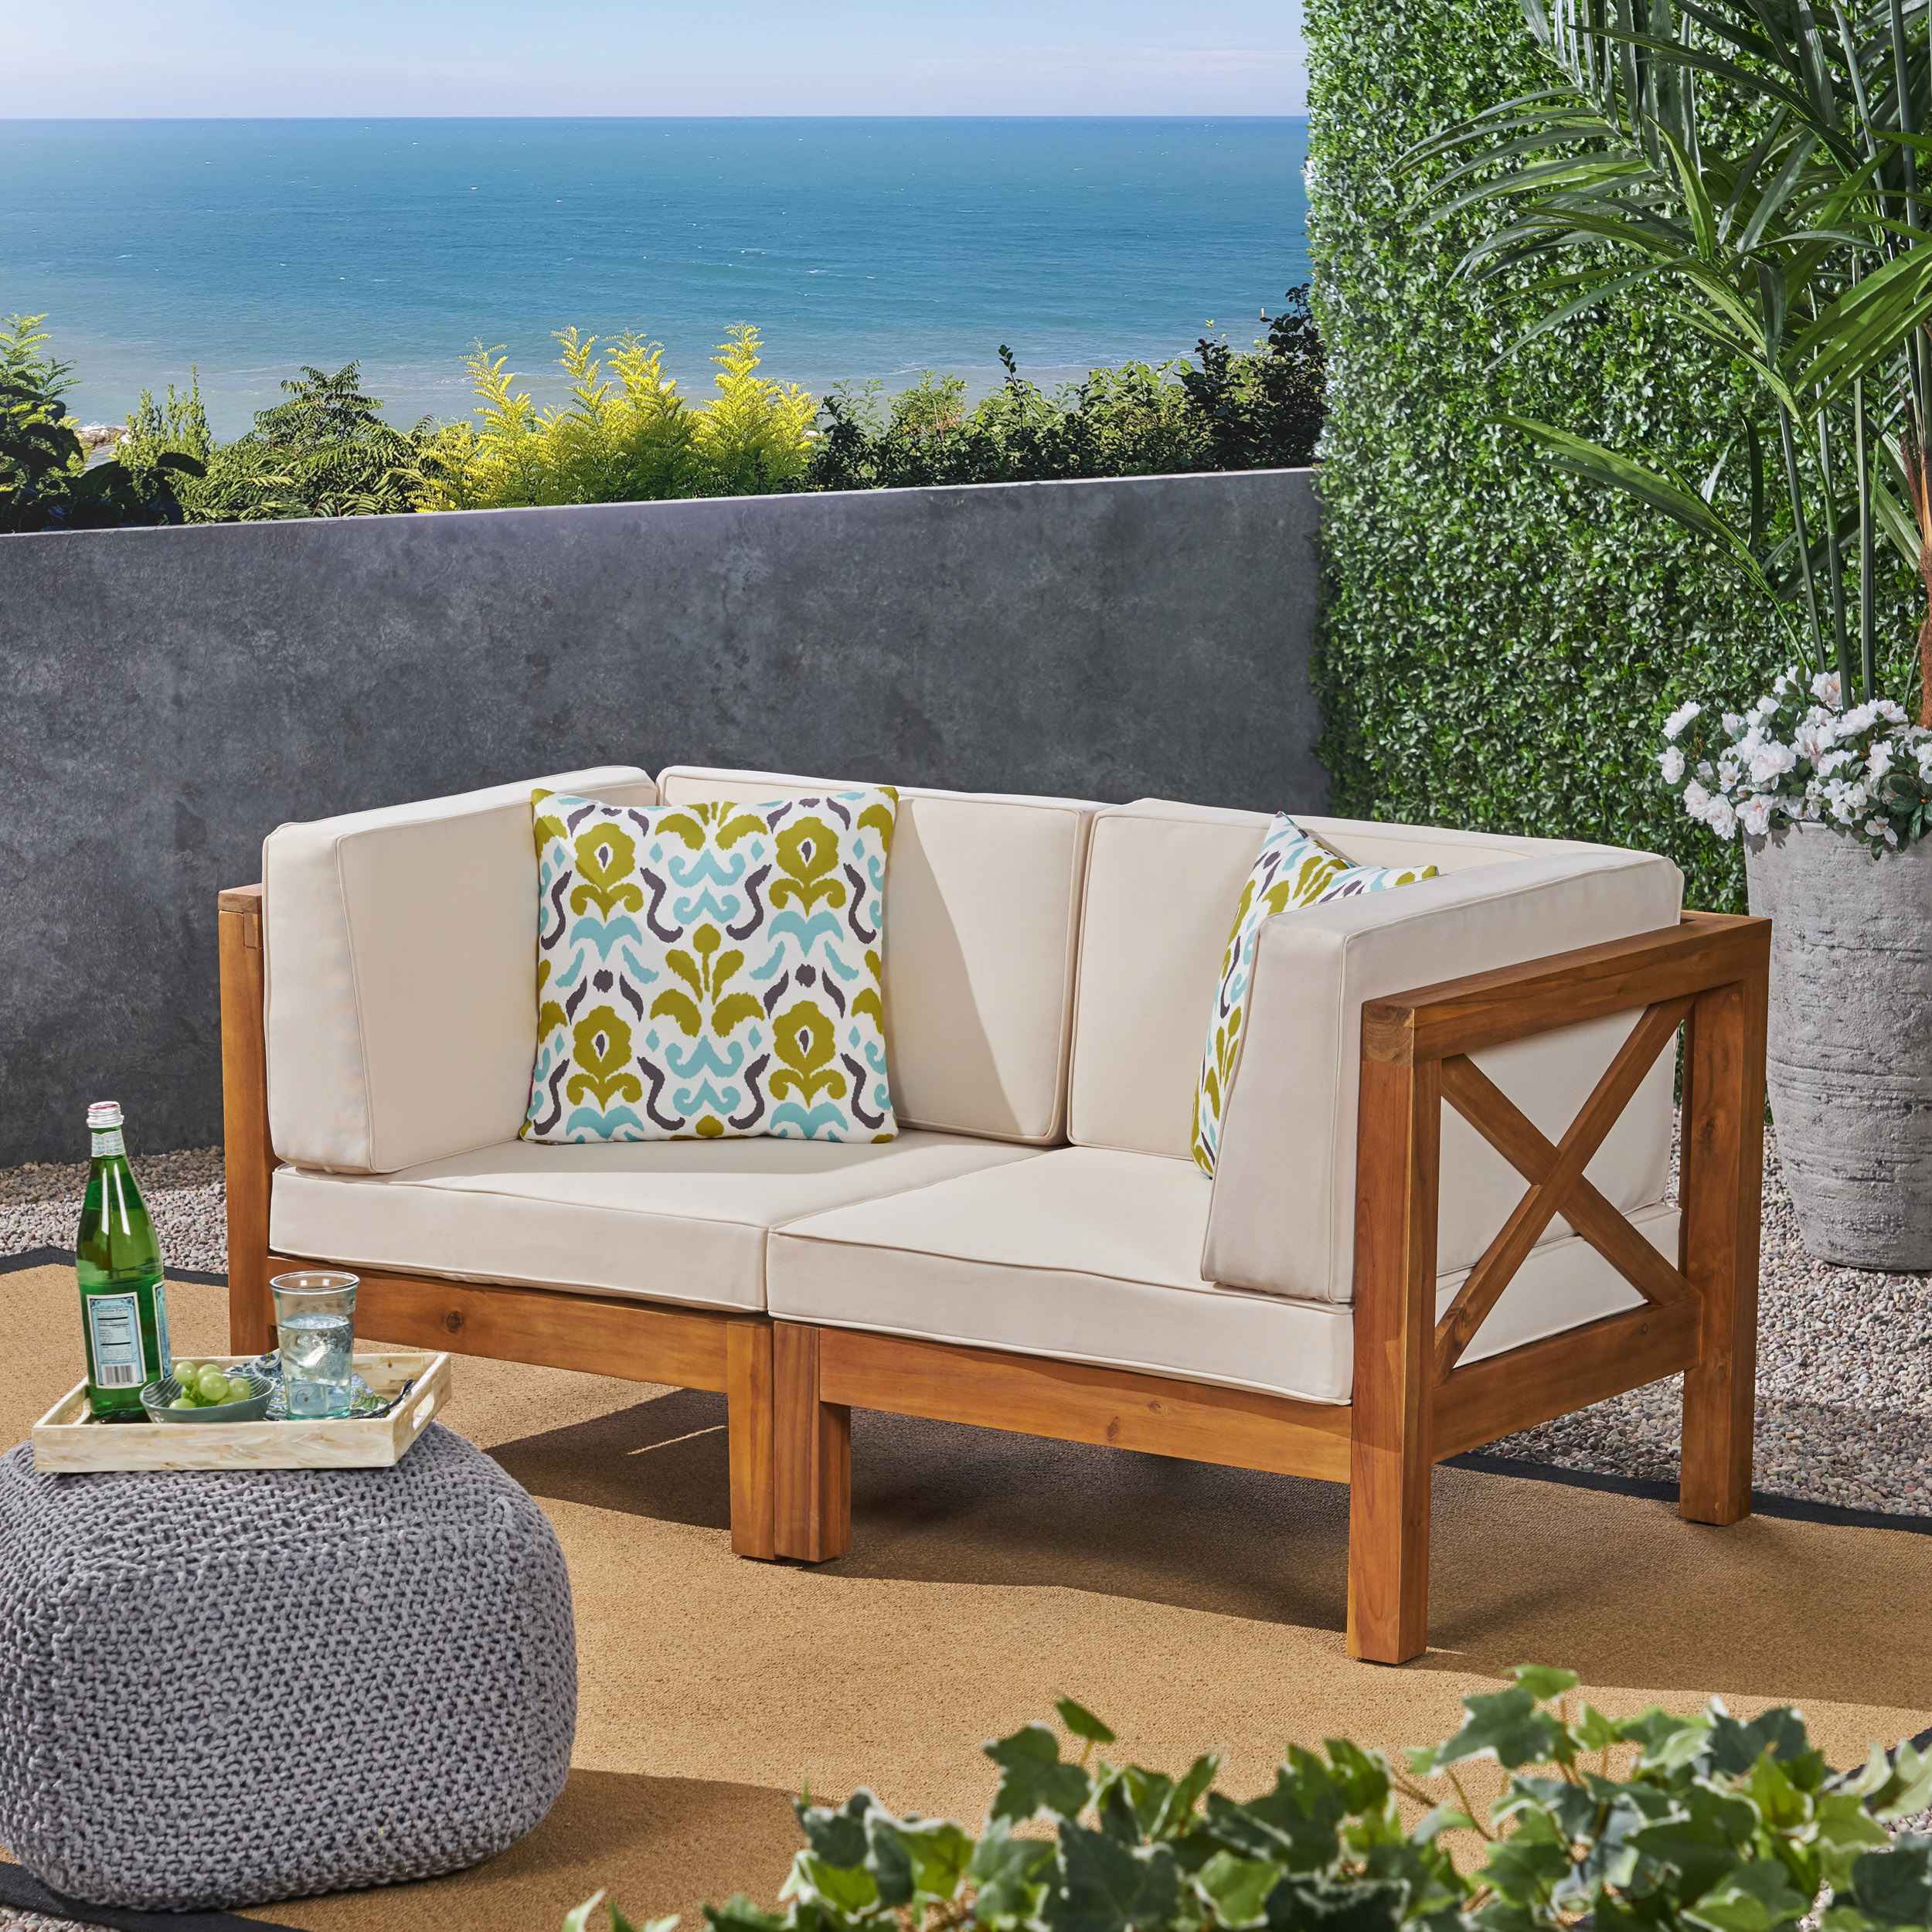 Luella Outdoor Modular Sectional Acacia Wood Loveseat with Cushions, Teak, Blue